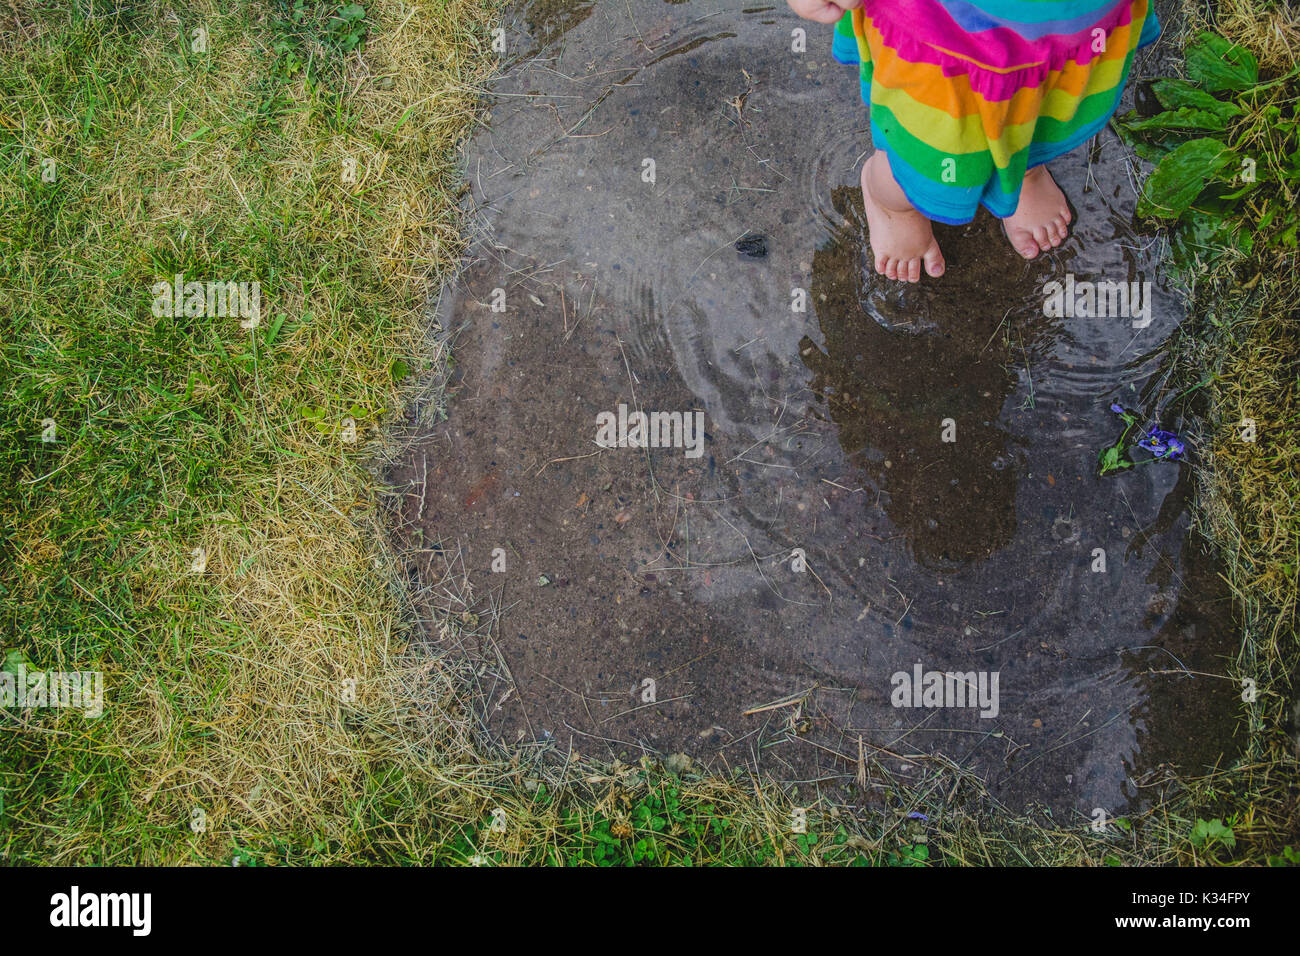 A young child stands in a mud puddle on a rainy day. - Stock Image